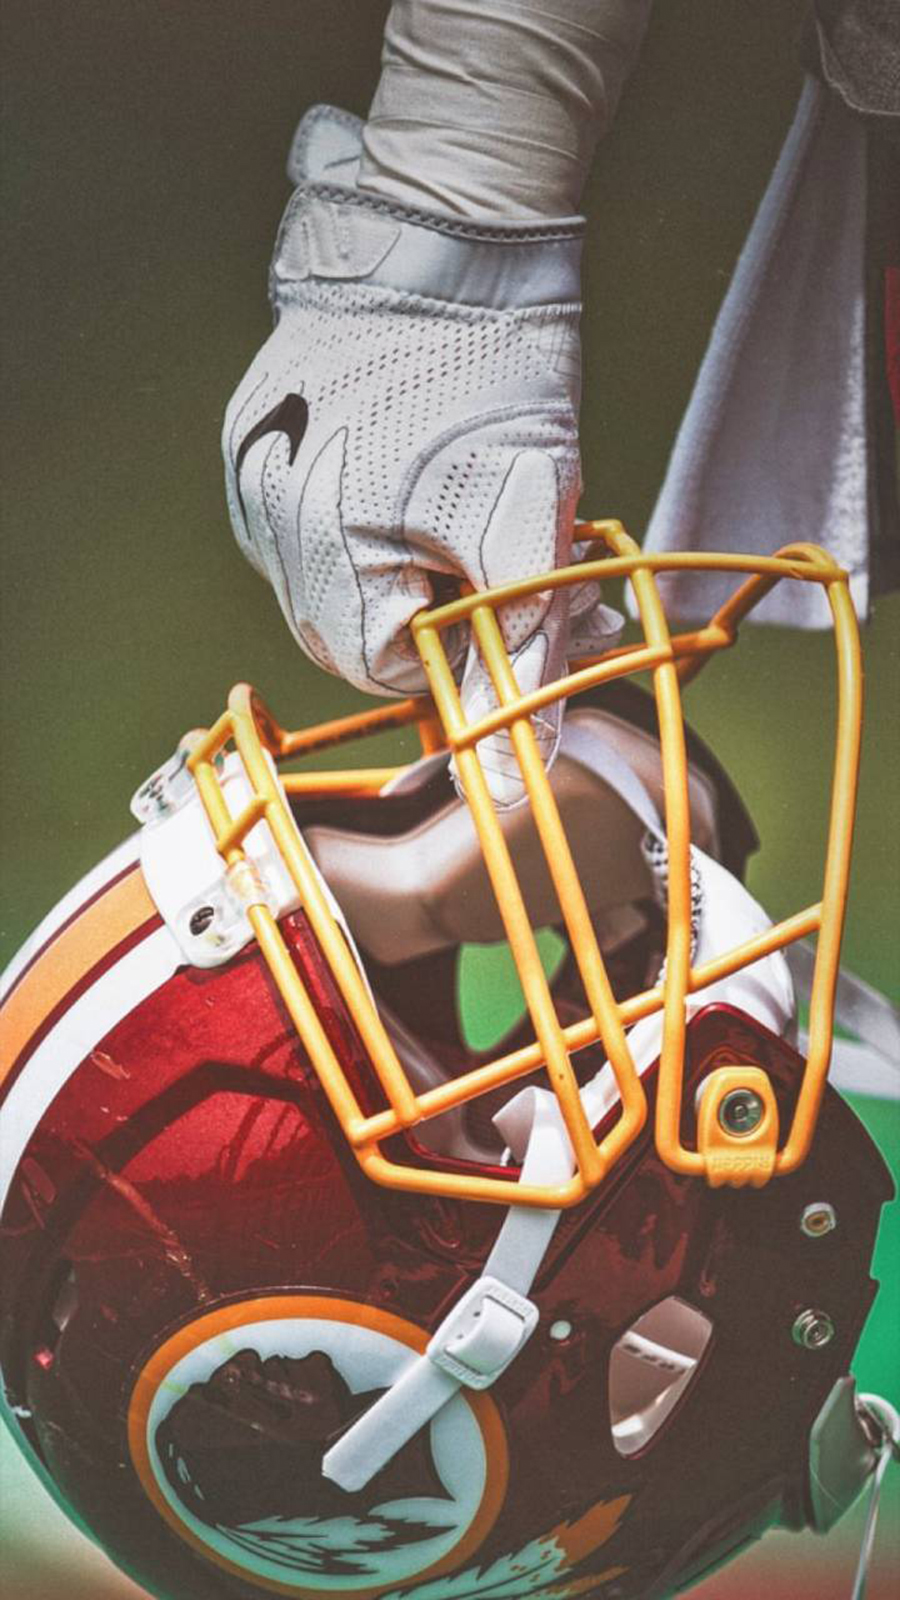 Red Skins Wallpapers Free Download For Your Device